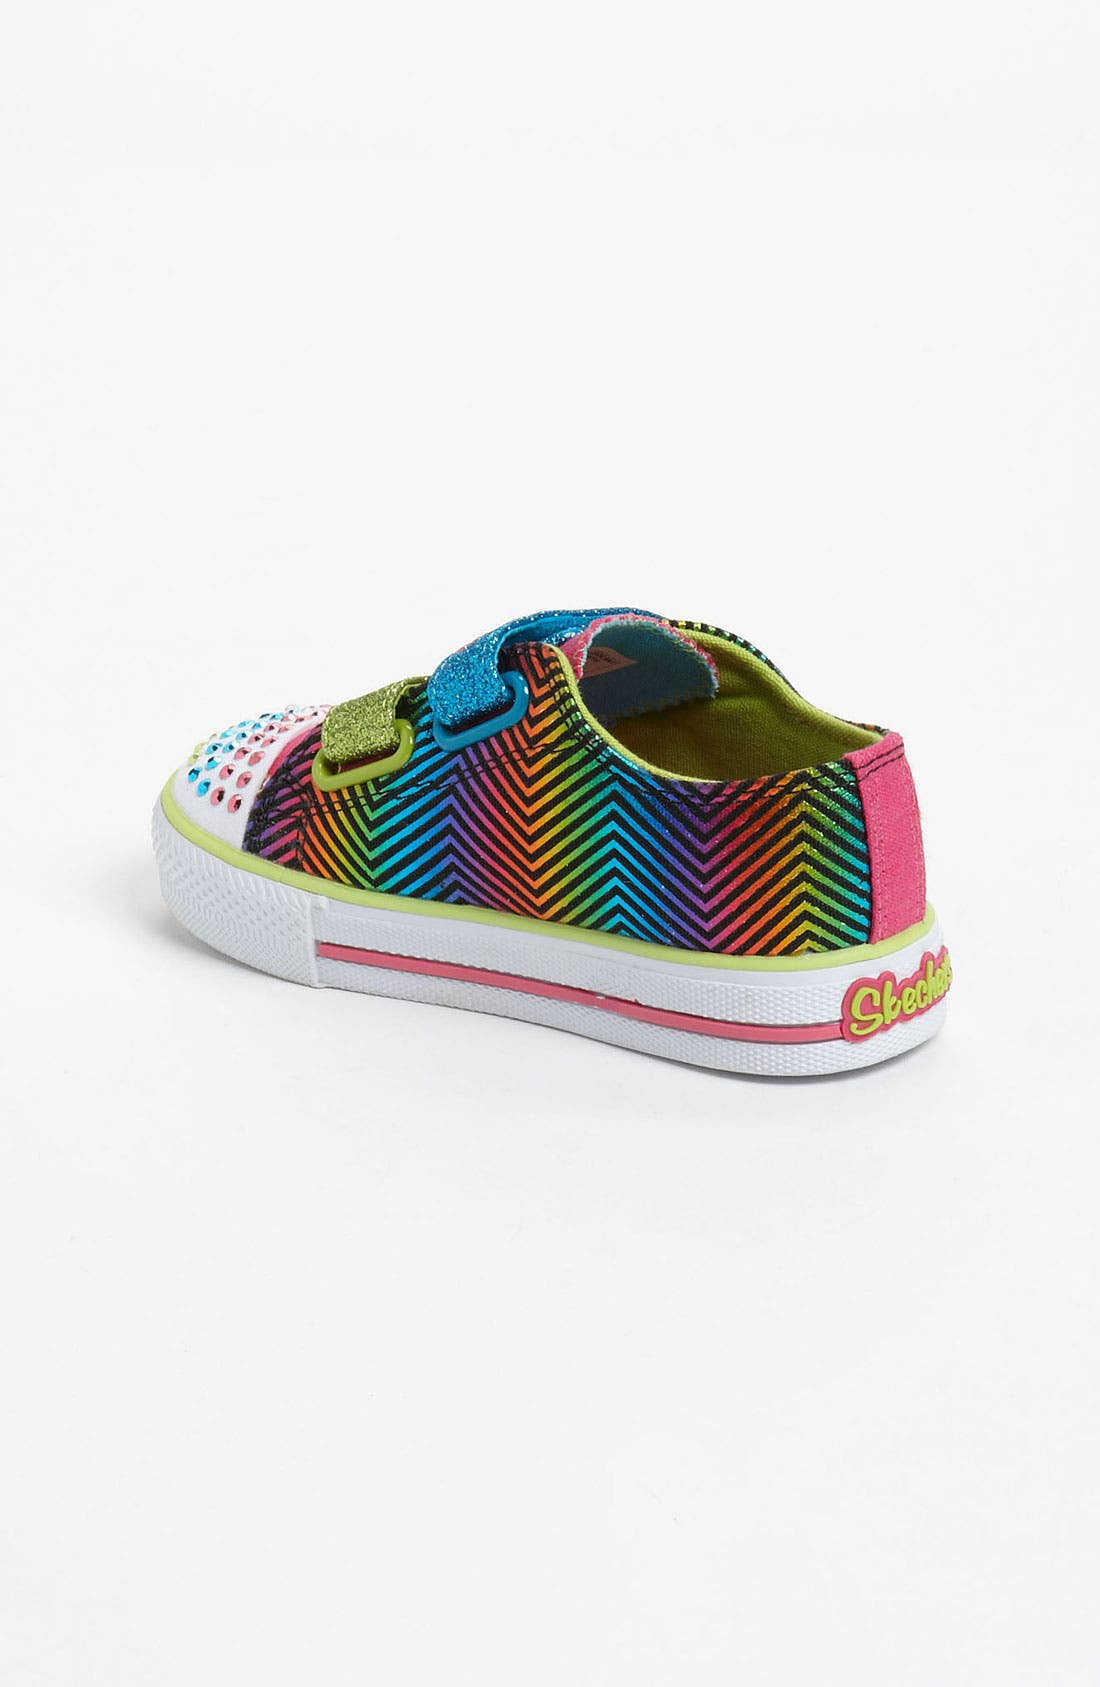 Alternate Image 2  - SKECHERS 'Shuffles - Baby Luv' Light Up Sneaker (Walker & Toddler)